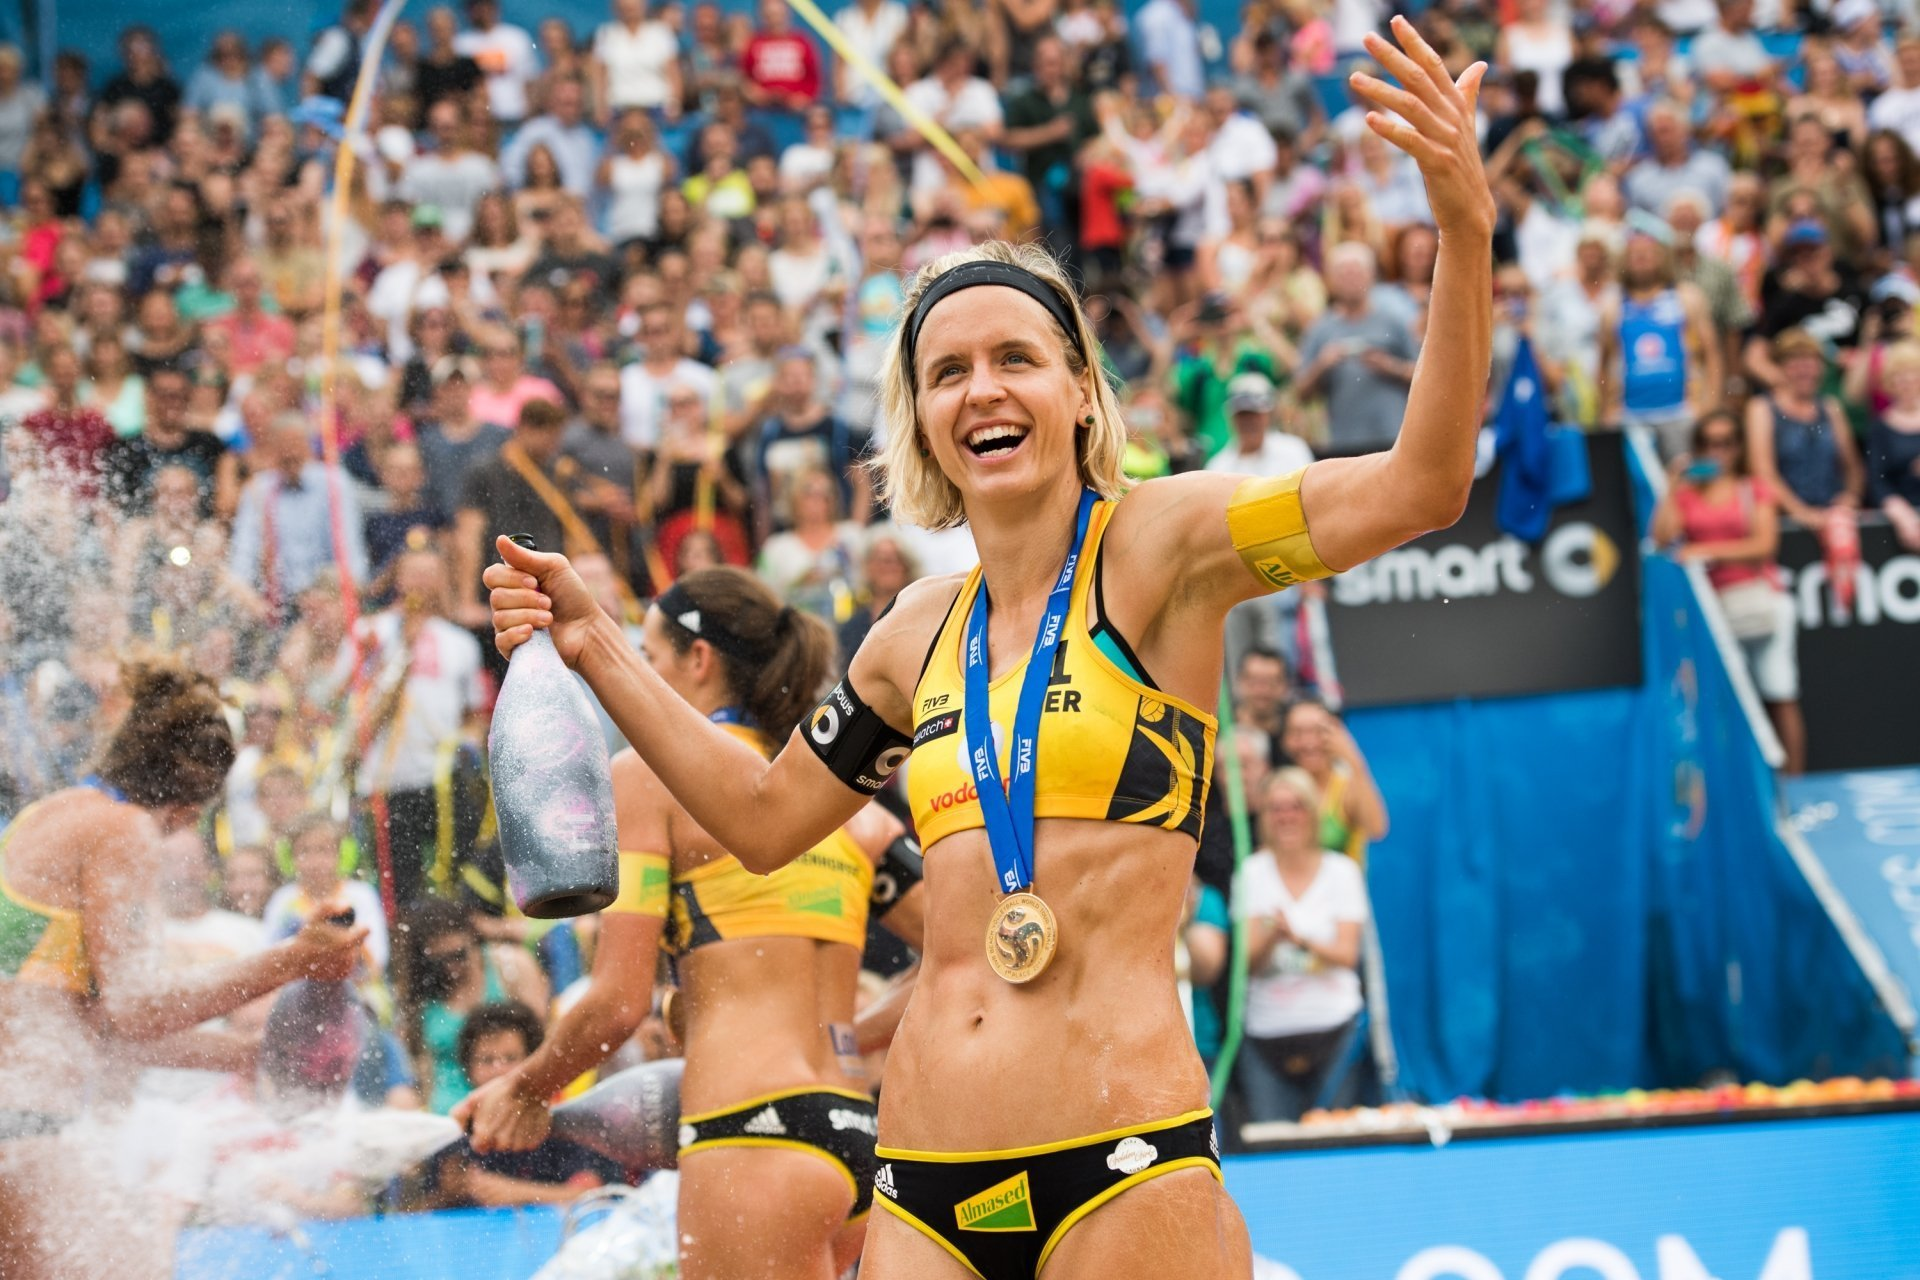 Reigning World and Olympic champion Laura Ludwig makes her first return to beach volleyball in 20 months in Xiamen